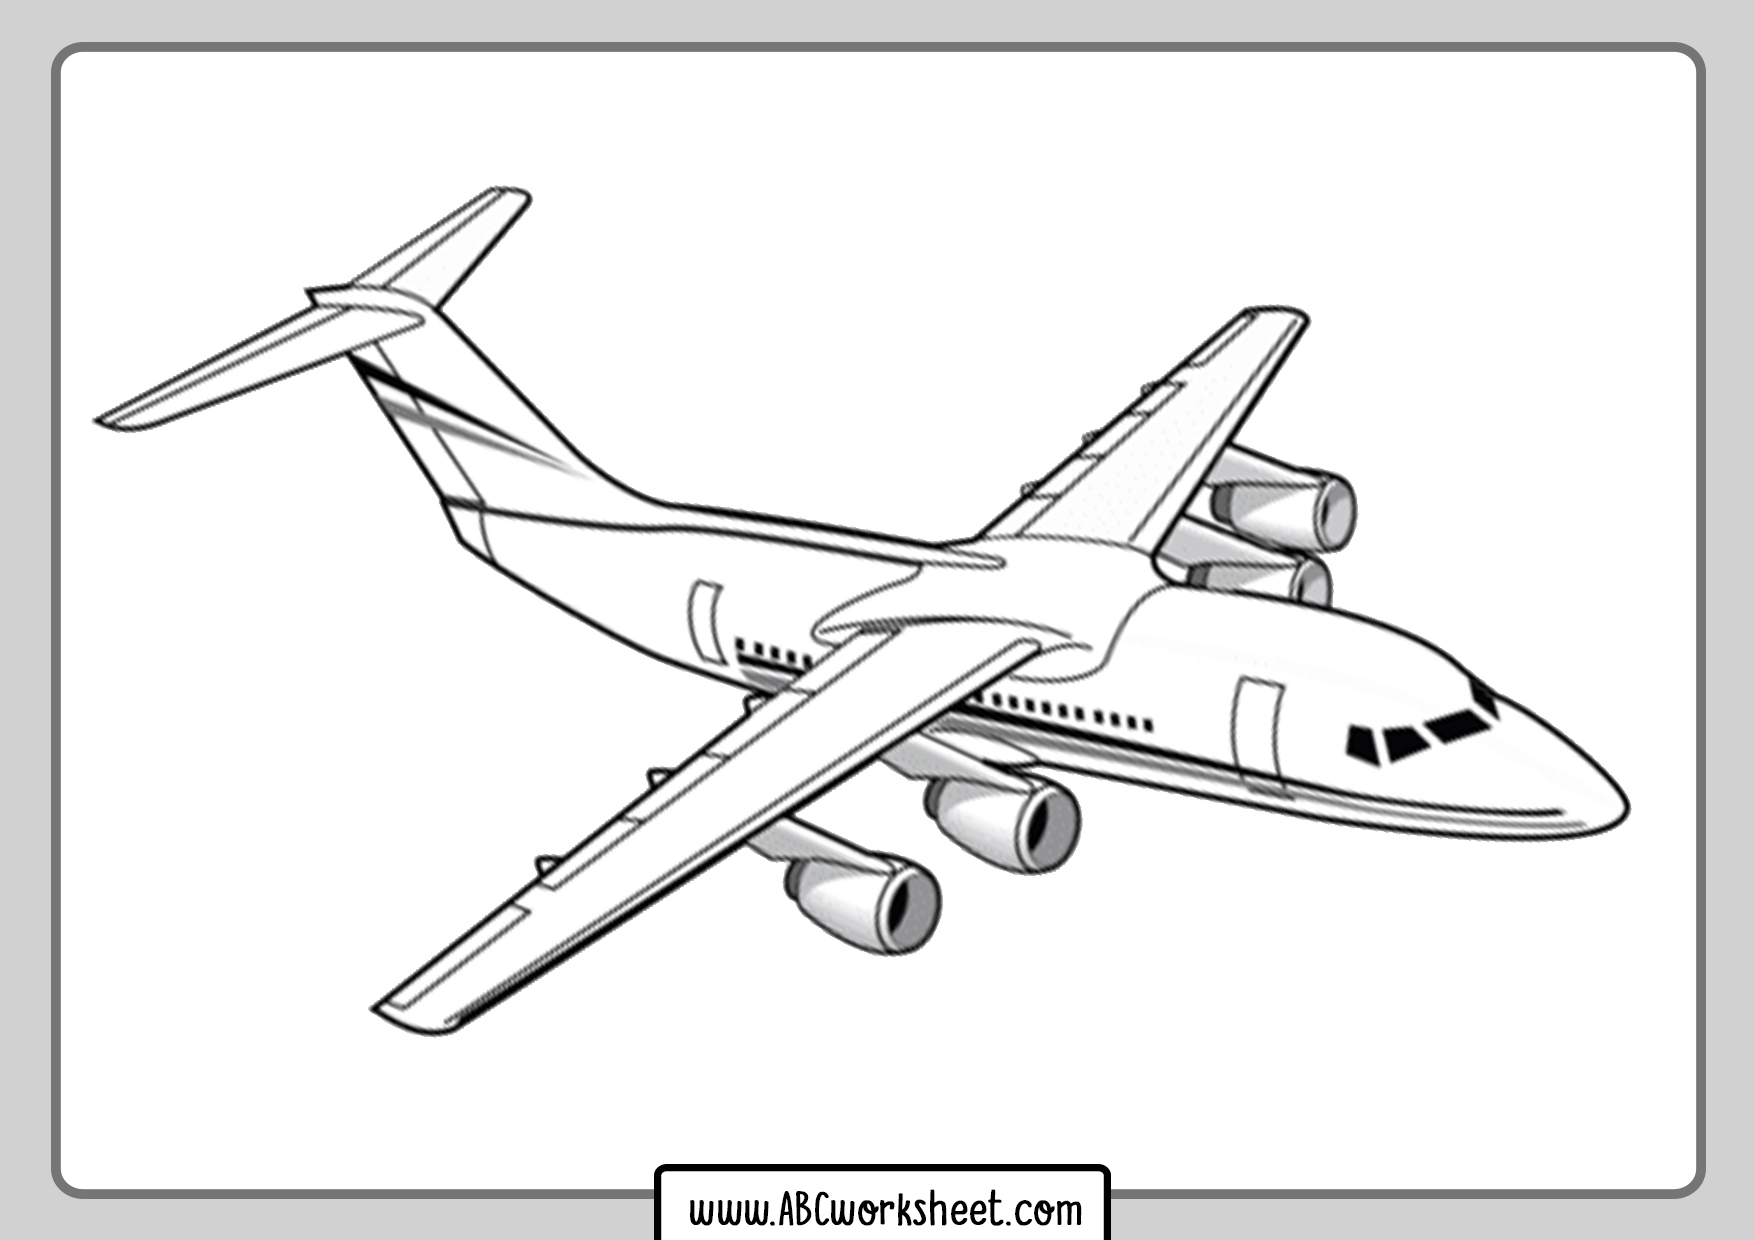 jet colouring pages jet coloring pages to download and print for free jet colouring pages